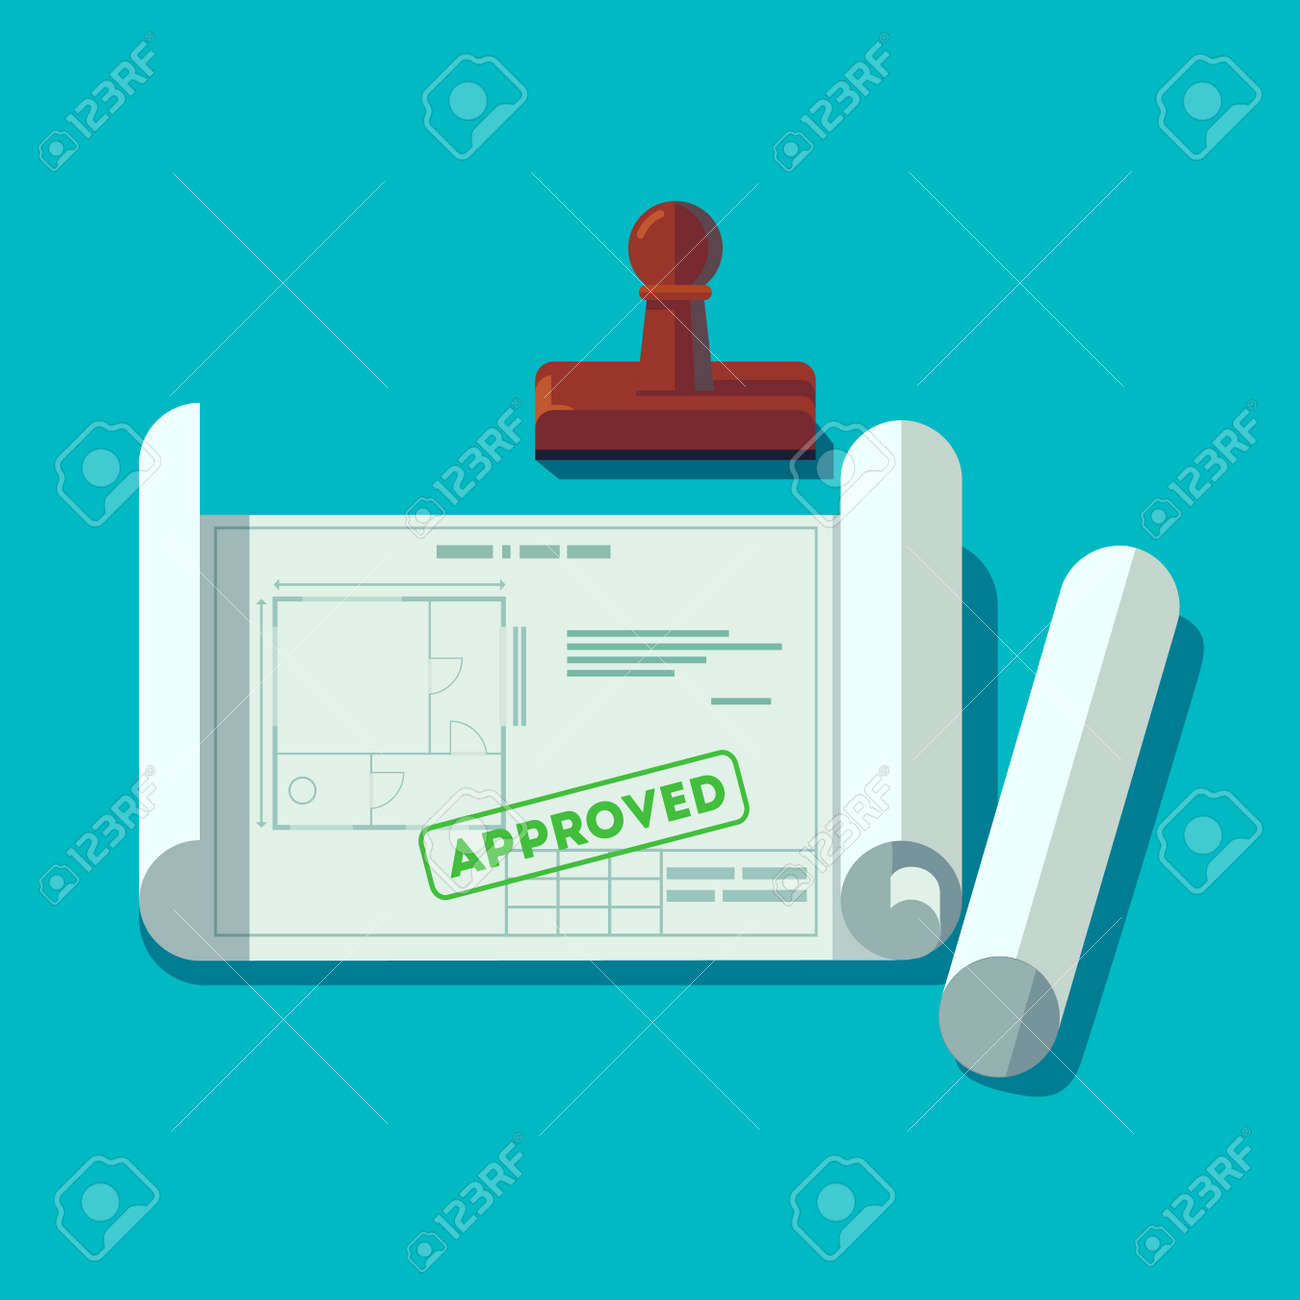 House planning technical blueprints received permission. Building plan approved stamp. Flat style vector illustration. - 67653584